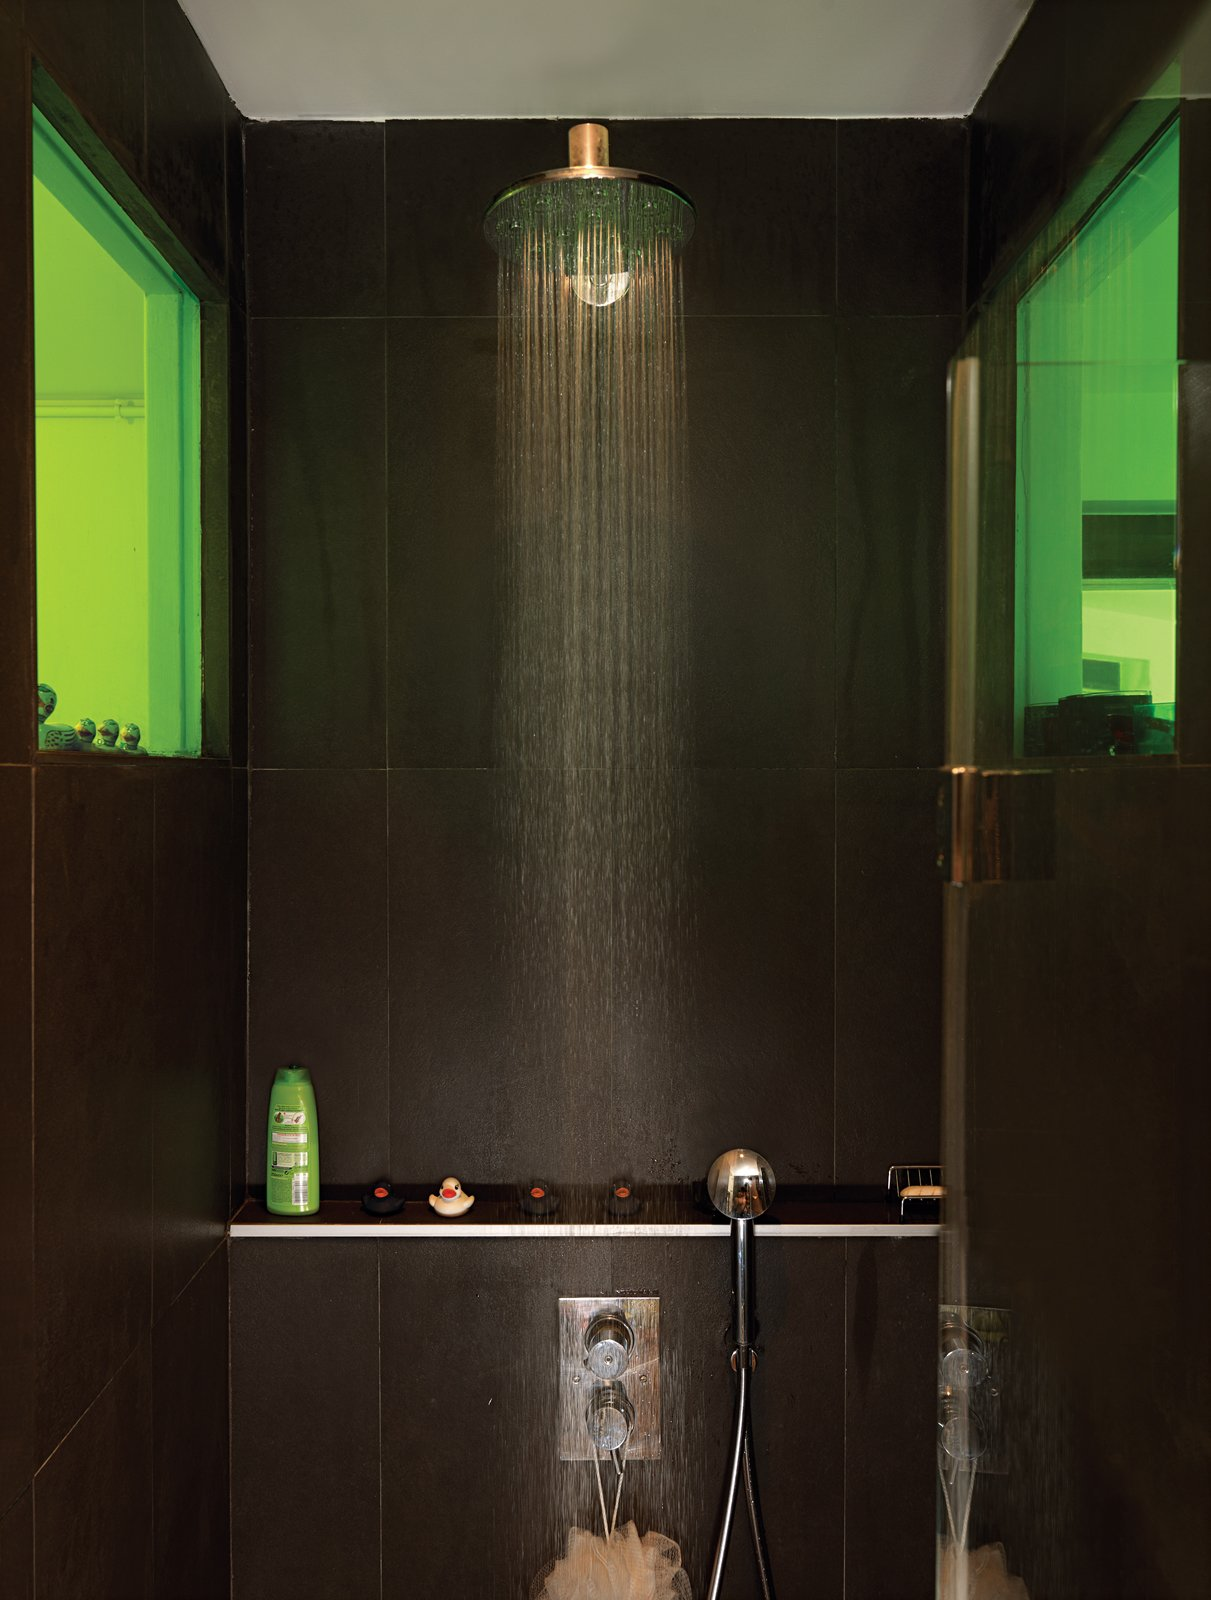 To create a sense of visual connection, Vinciguerra and Santiard set a colored window between the two rooms. They spent days making sure that the green transparency would meld nicely with the shade of green on the kitchen shelves.  Photo 3 of 13 in Tips for Tiny Bathrooms from Shelf Life